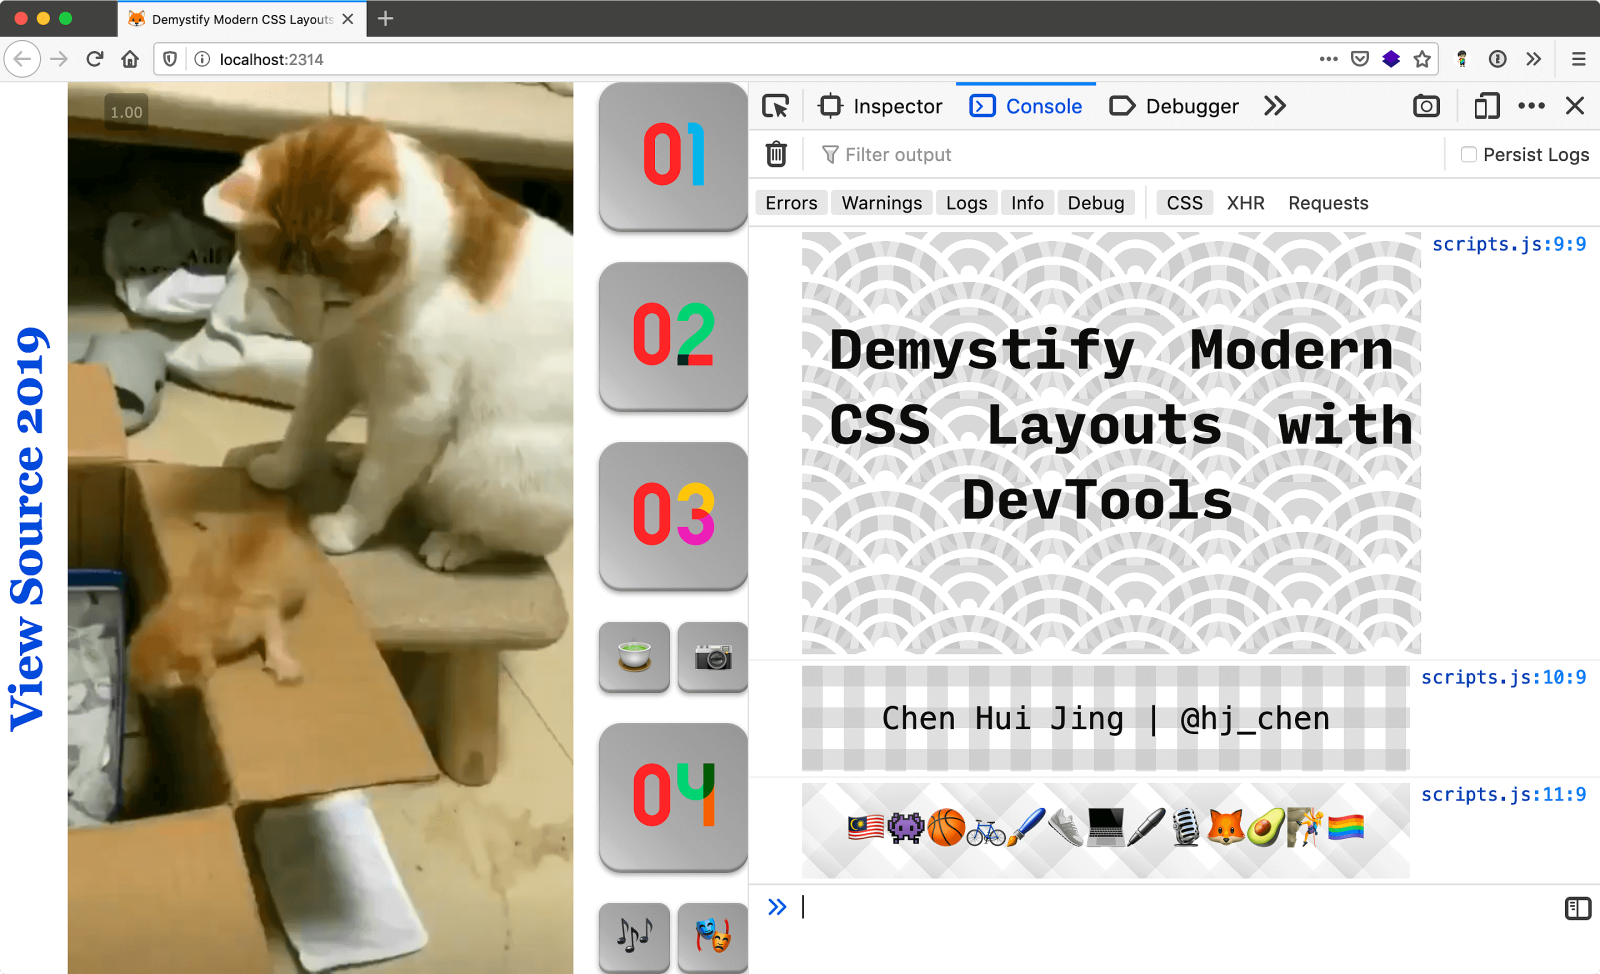 Demystify modern CSS layouts with DevTools